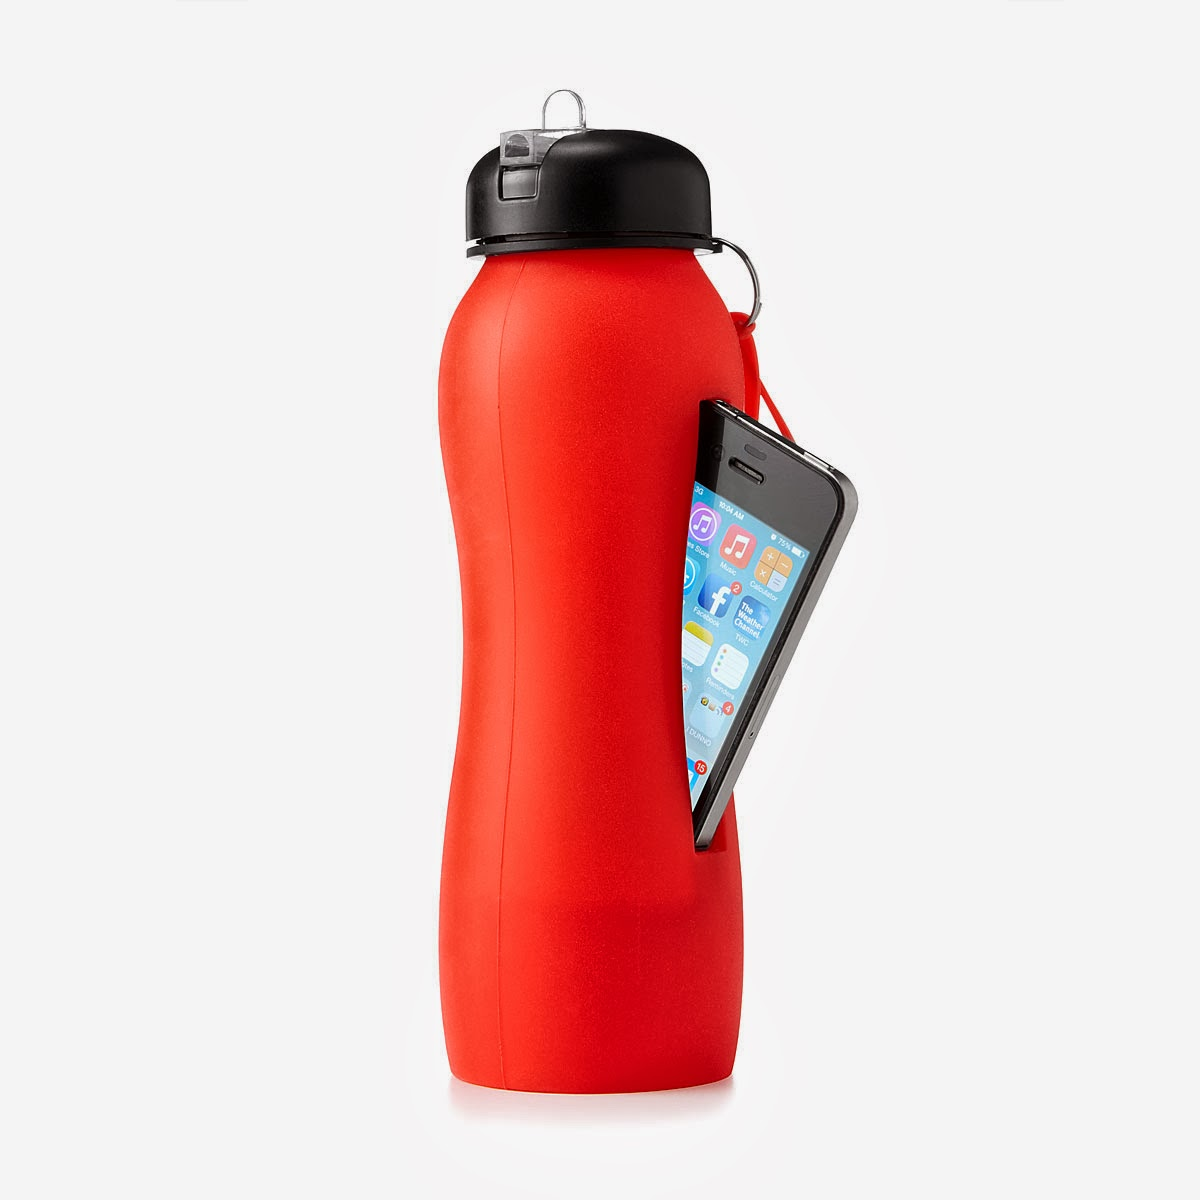 15 Innovative Water Bottles and Creative Water Bottle Designs.